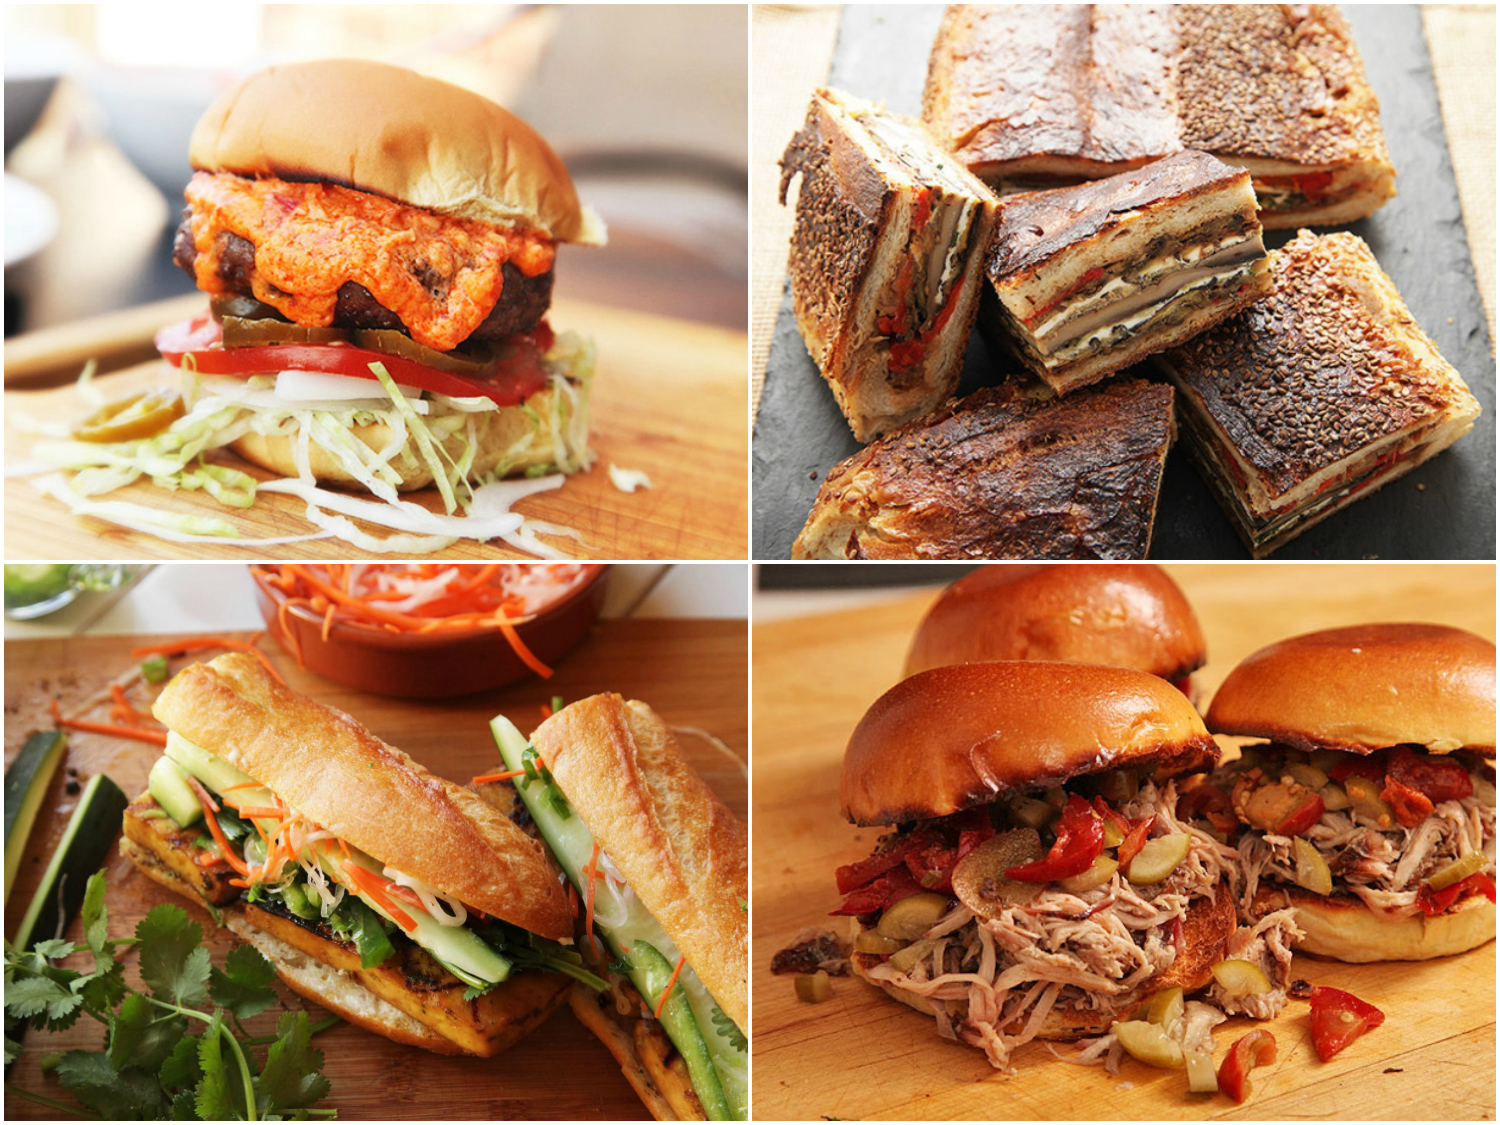 20160610-july-4-sandwiches-recipes-roundup-collage